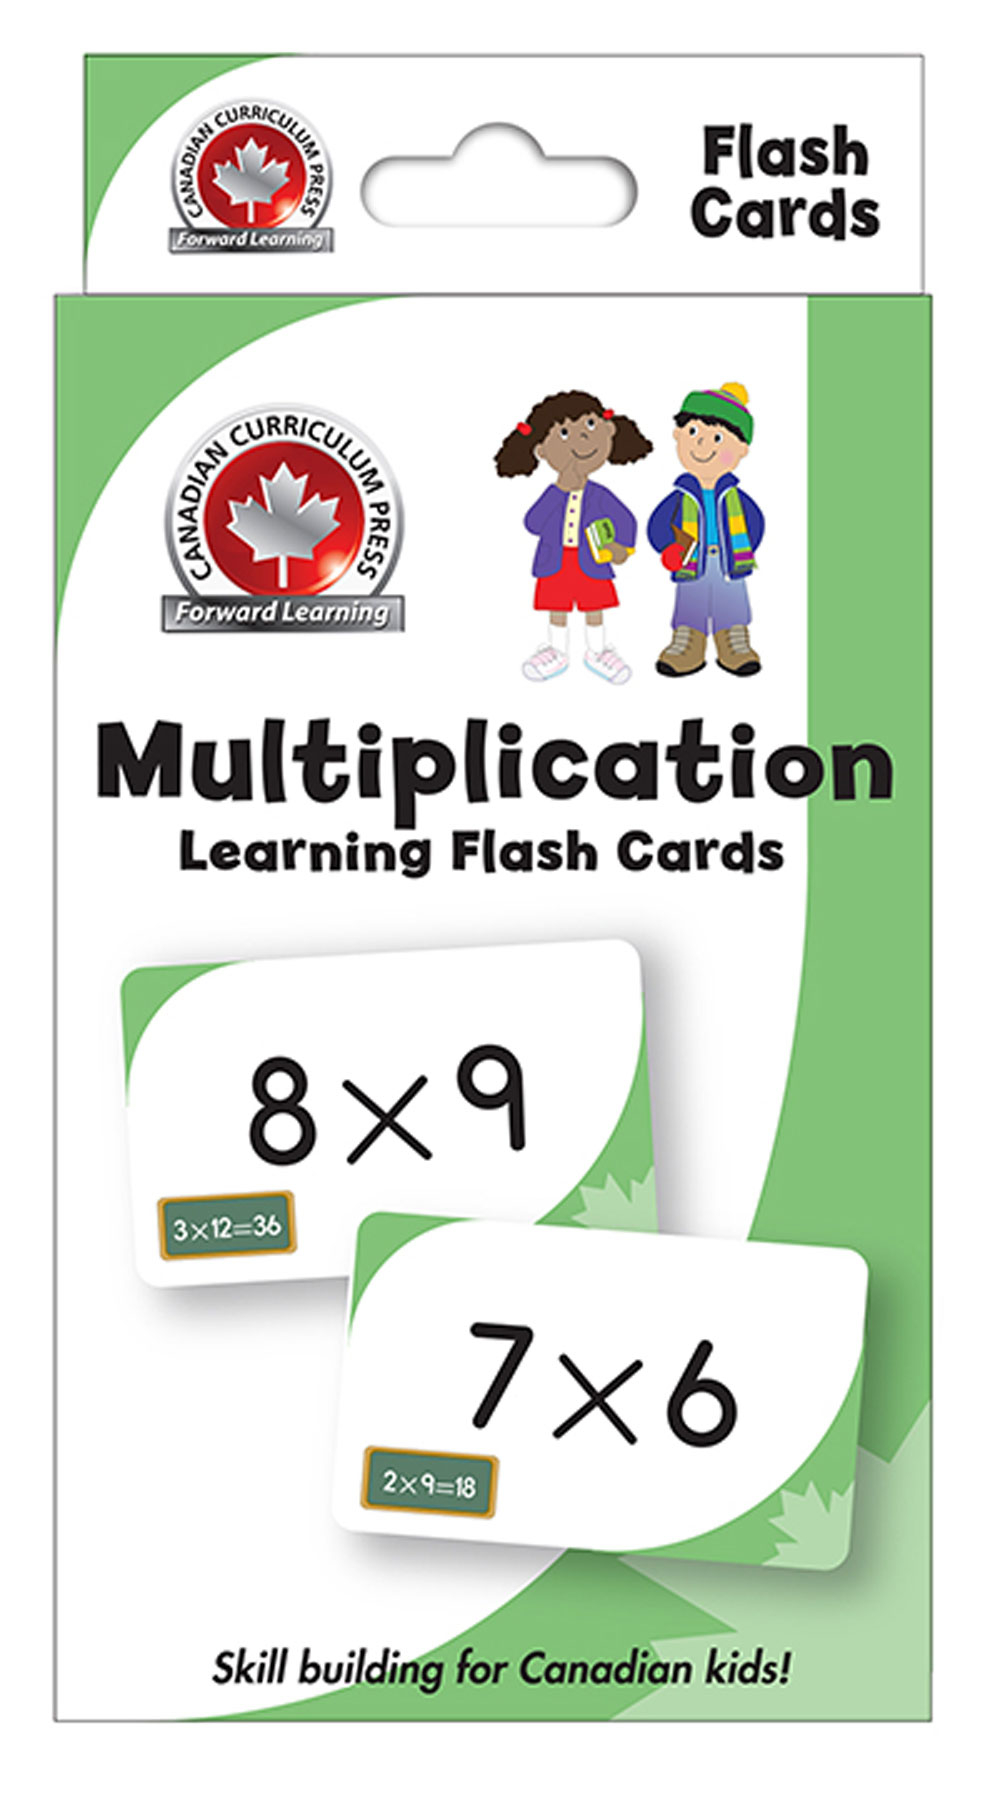 Buy Multiplication Flashcards For Cad 3.99 | Toys R Us Canada